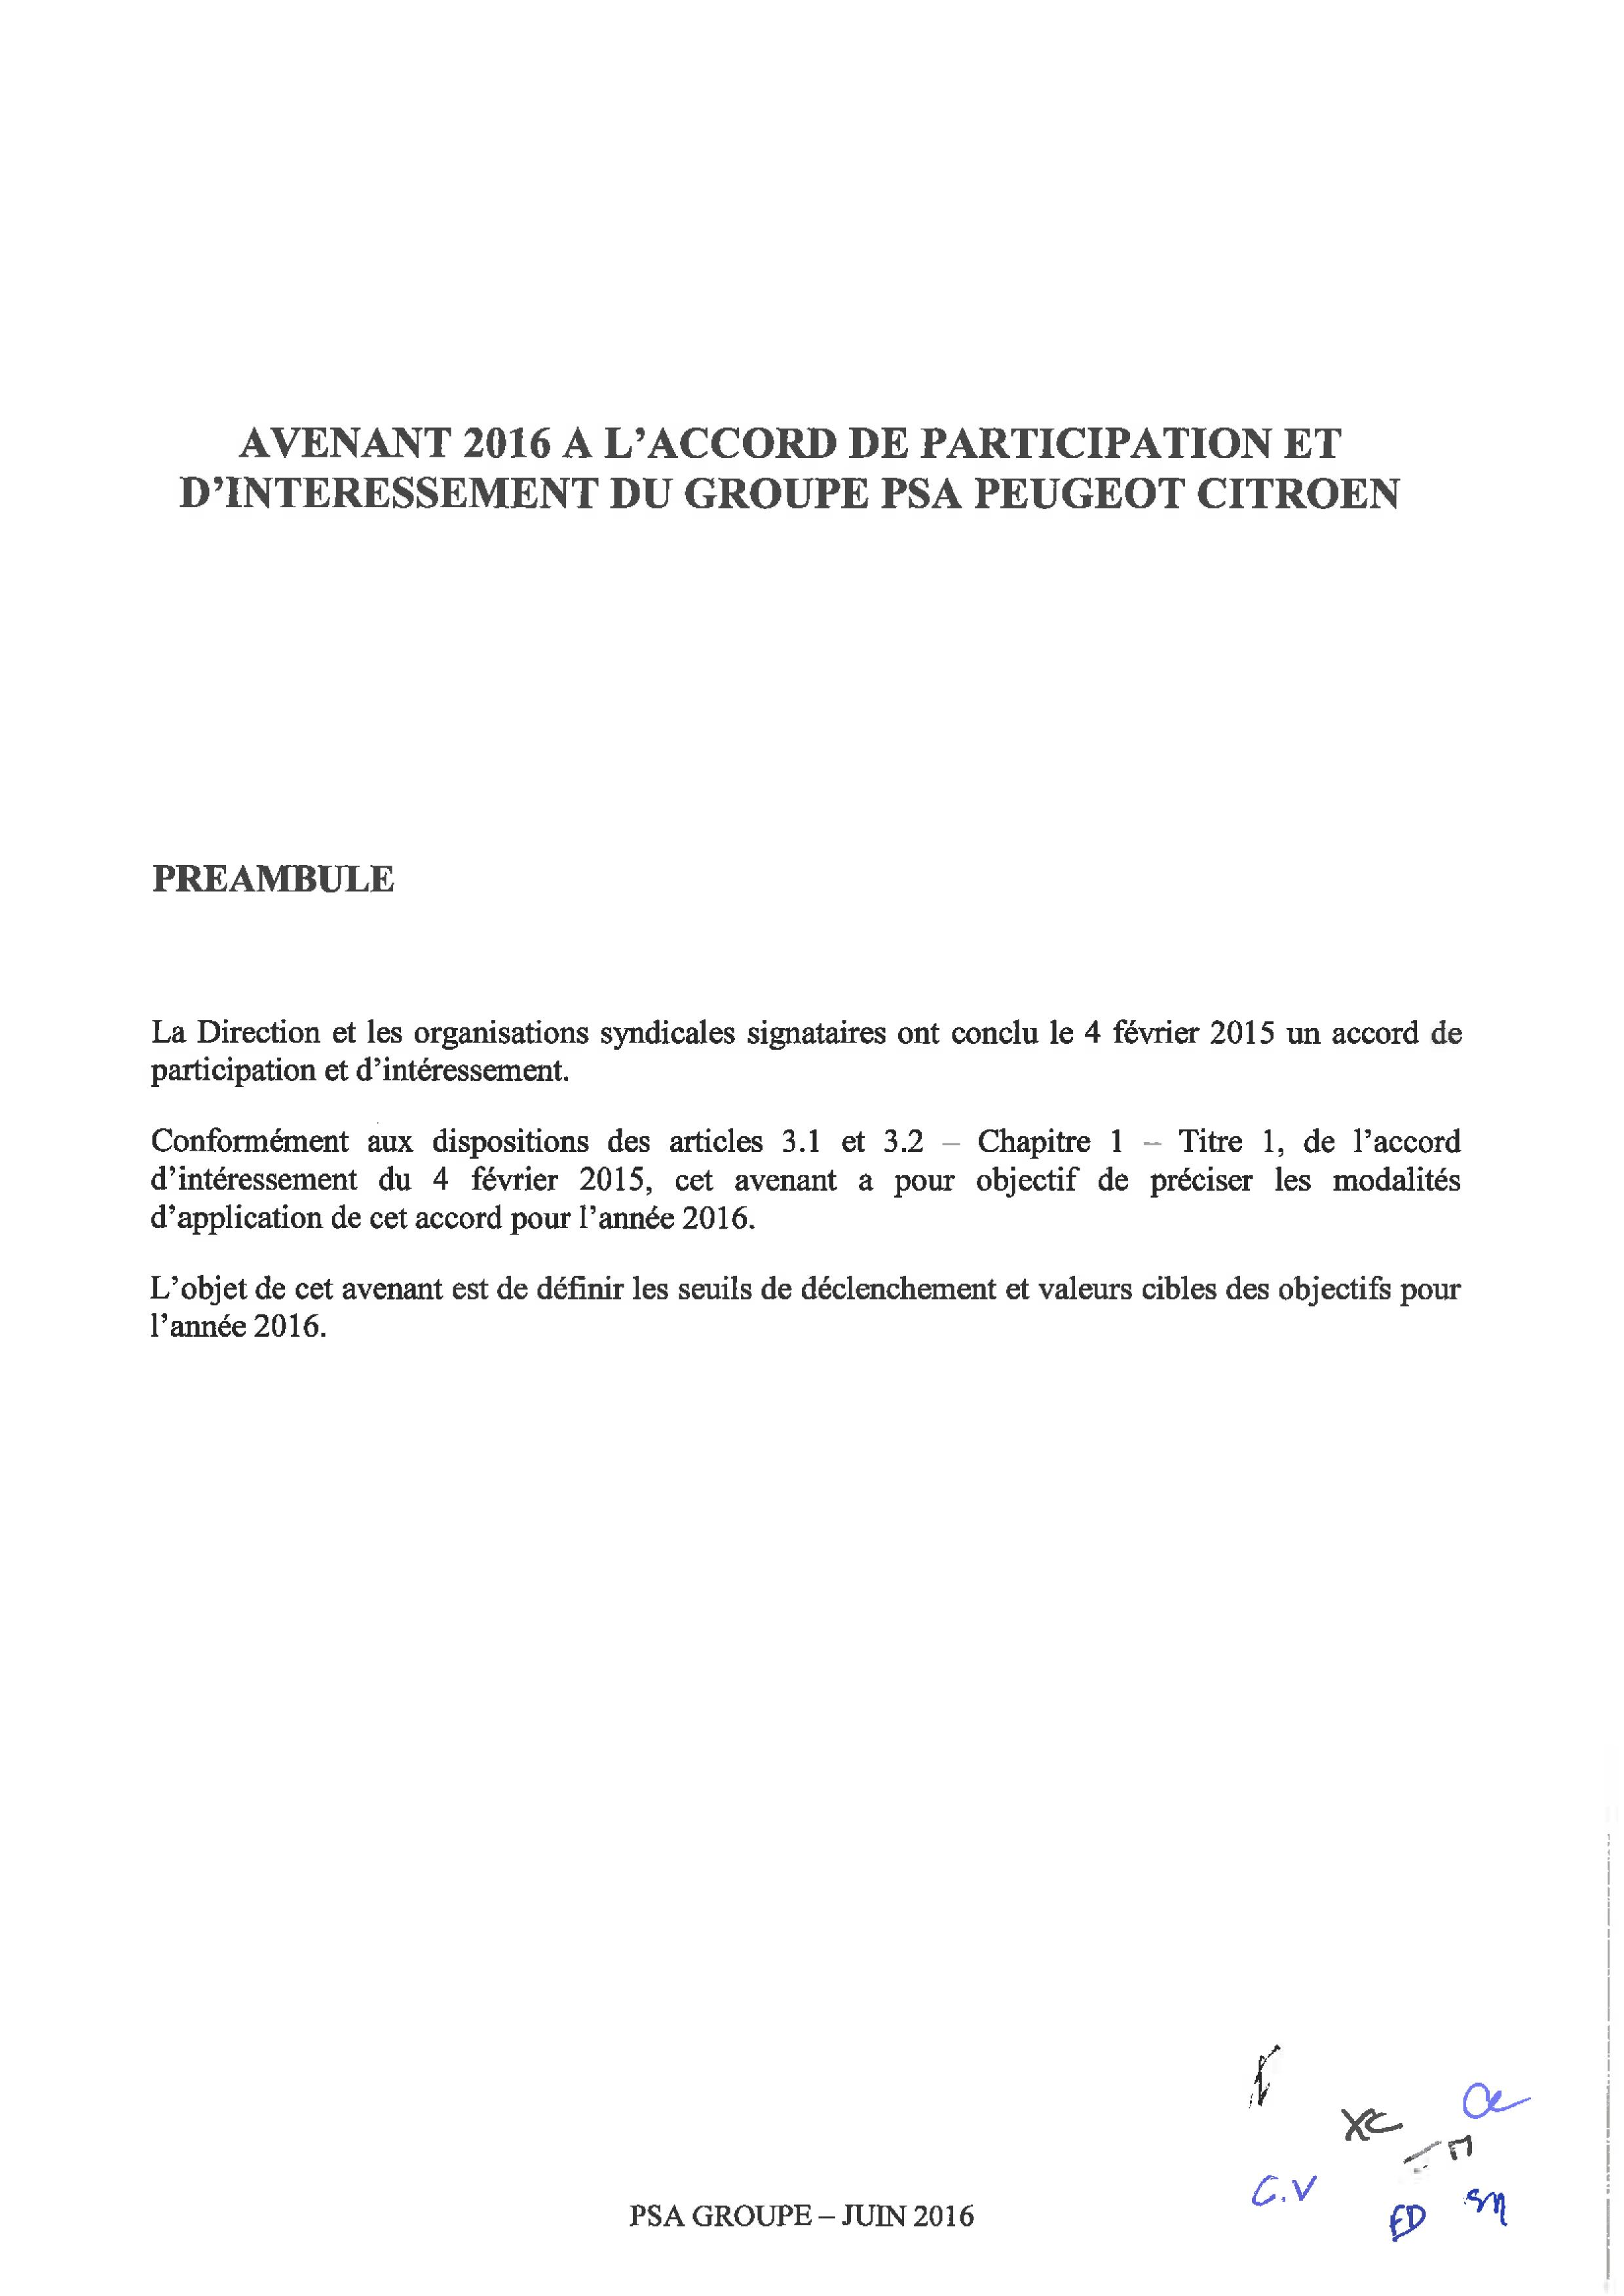 Avenant 2016 à l'accord de participation et d'interessement _01